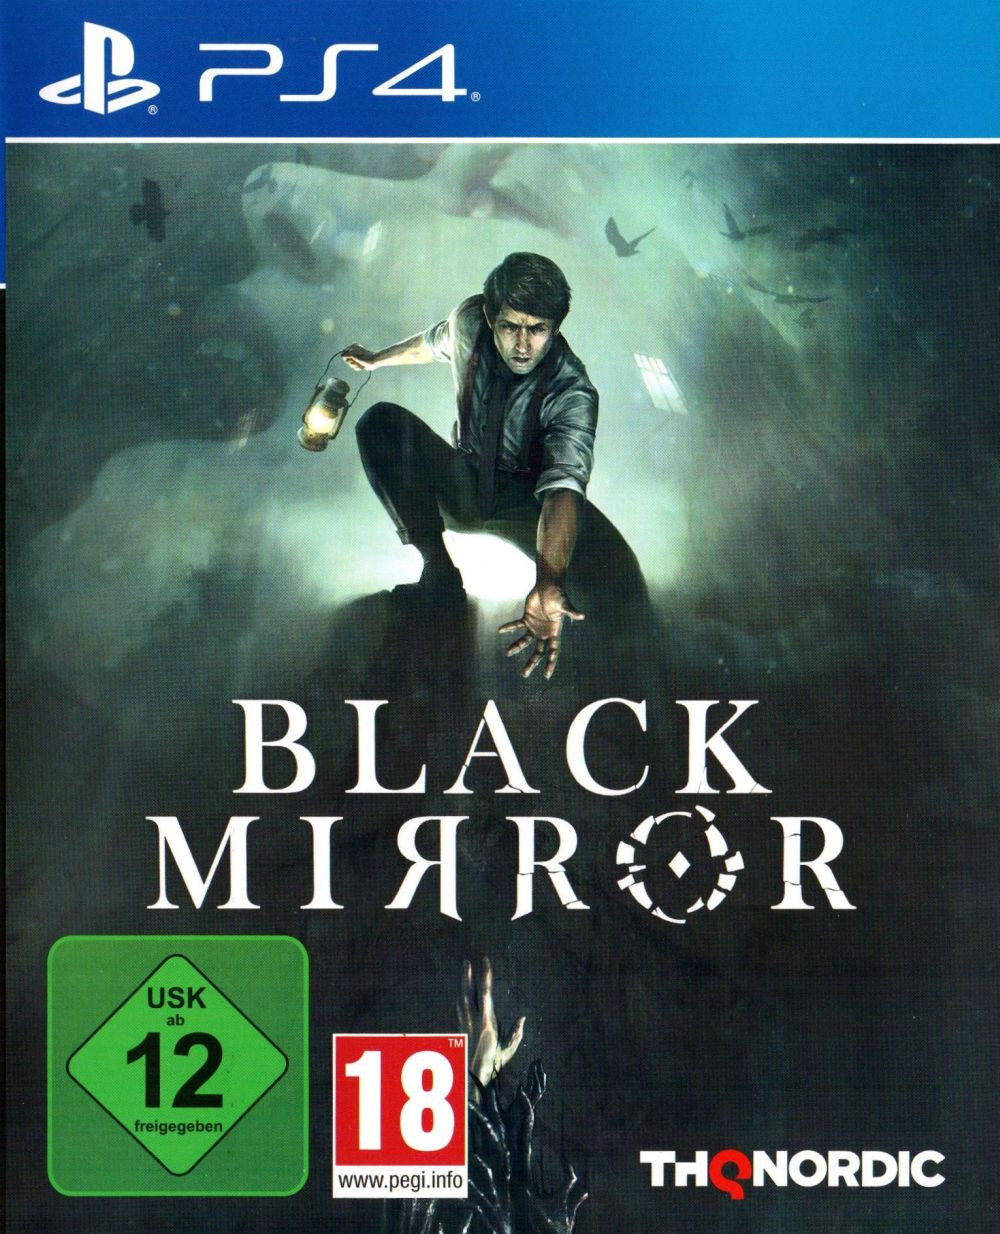 PS4 Black Mirror